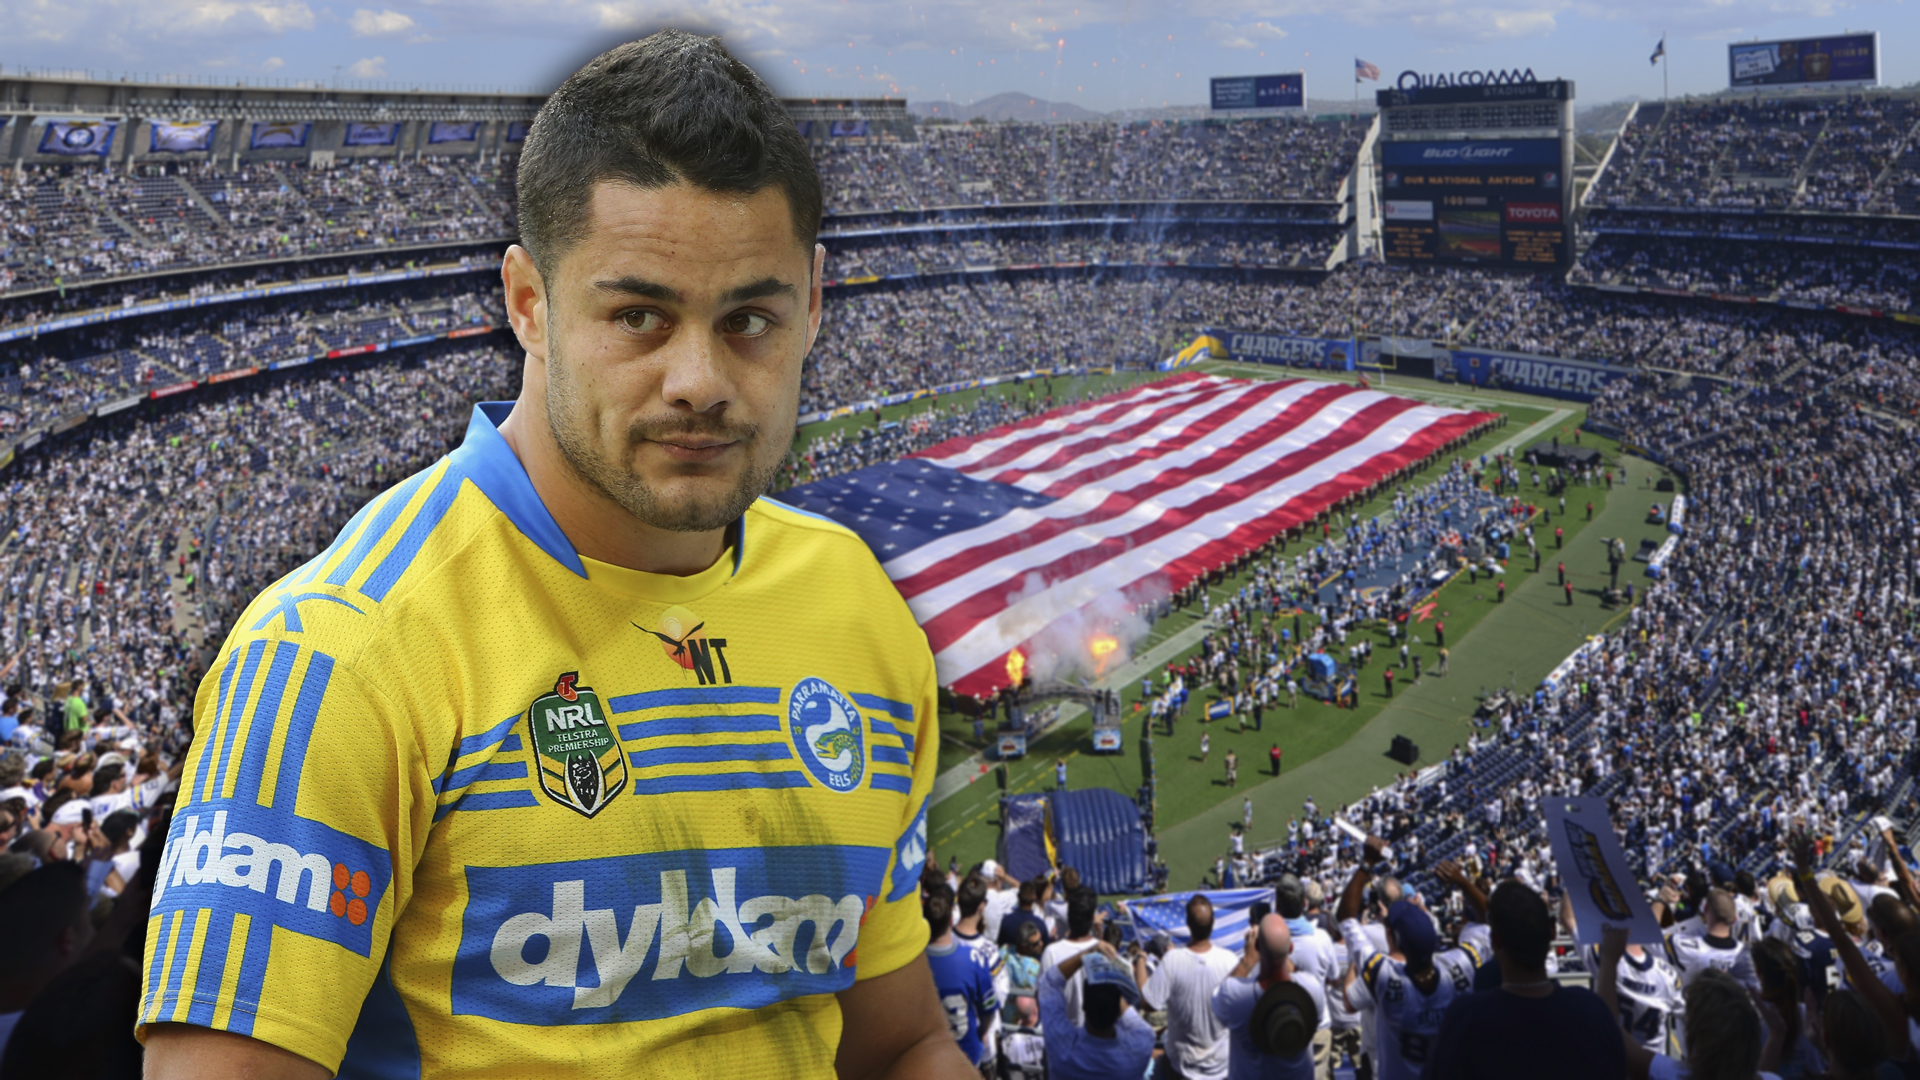 Former NRL Player Jarryd Hayne Has Stirred Up A 2000 Year Old Controversy And Angered Jewish Groups By Arguing That The Jews Were Responsible For Death